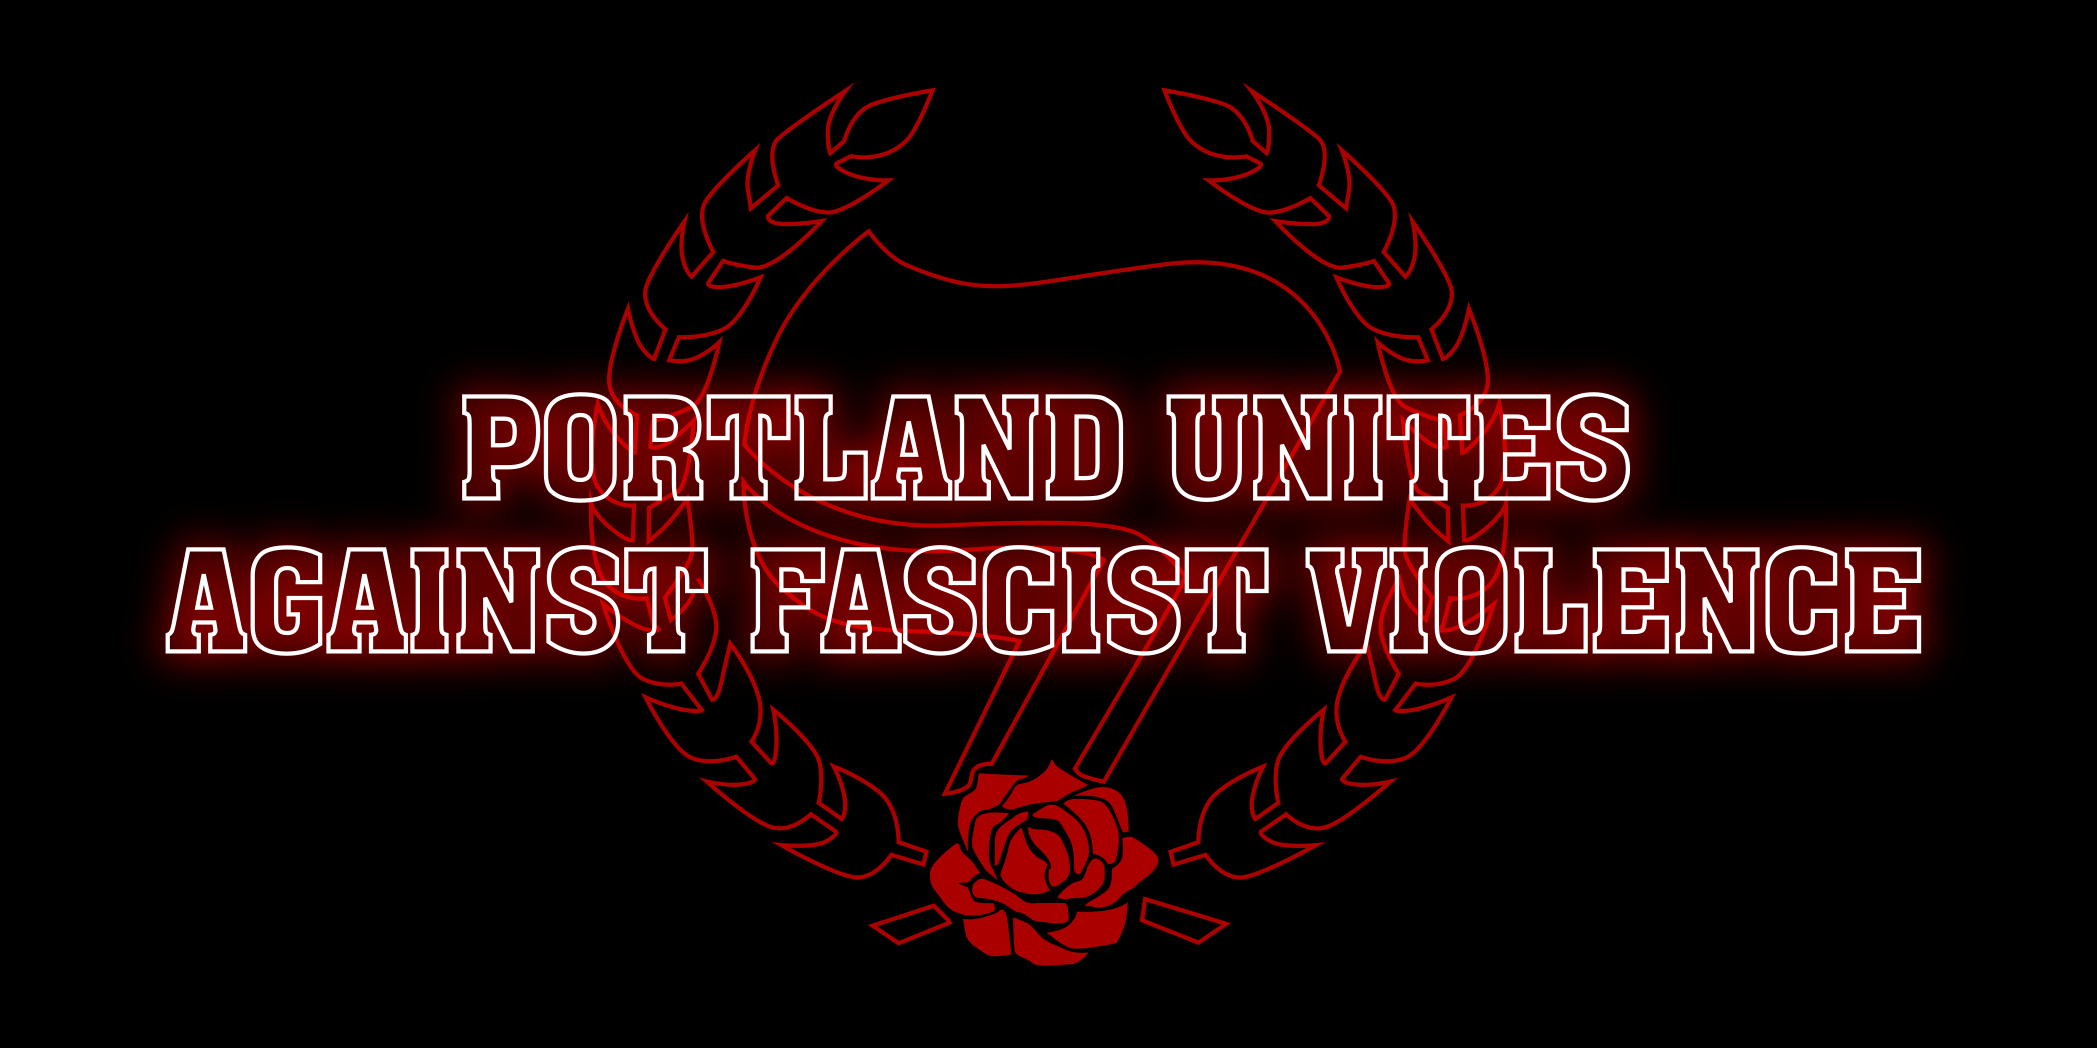 PORTLAND UNITES AGAINST FASCIST VIOLENCE